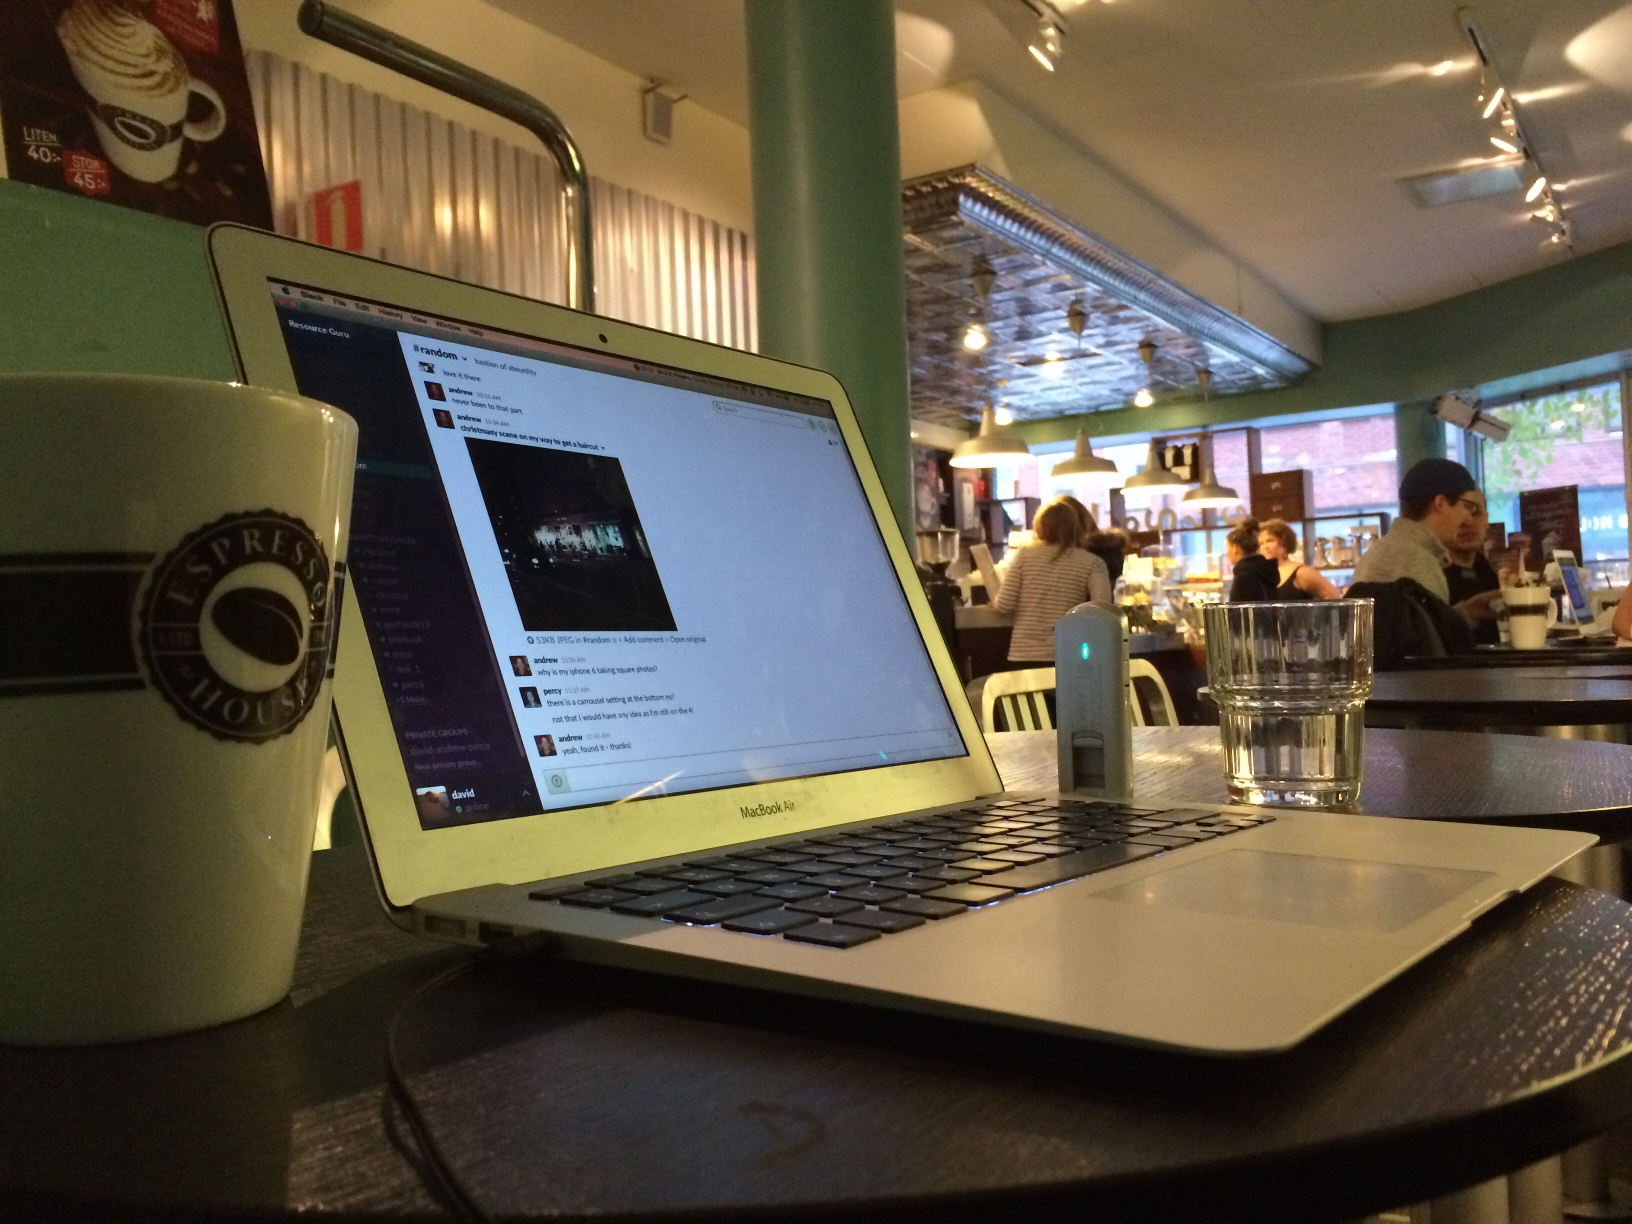 Laptop and coffee cup on table at bistro